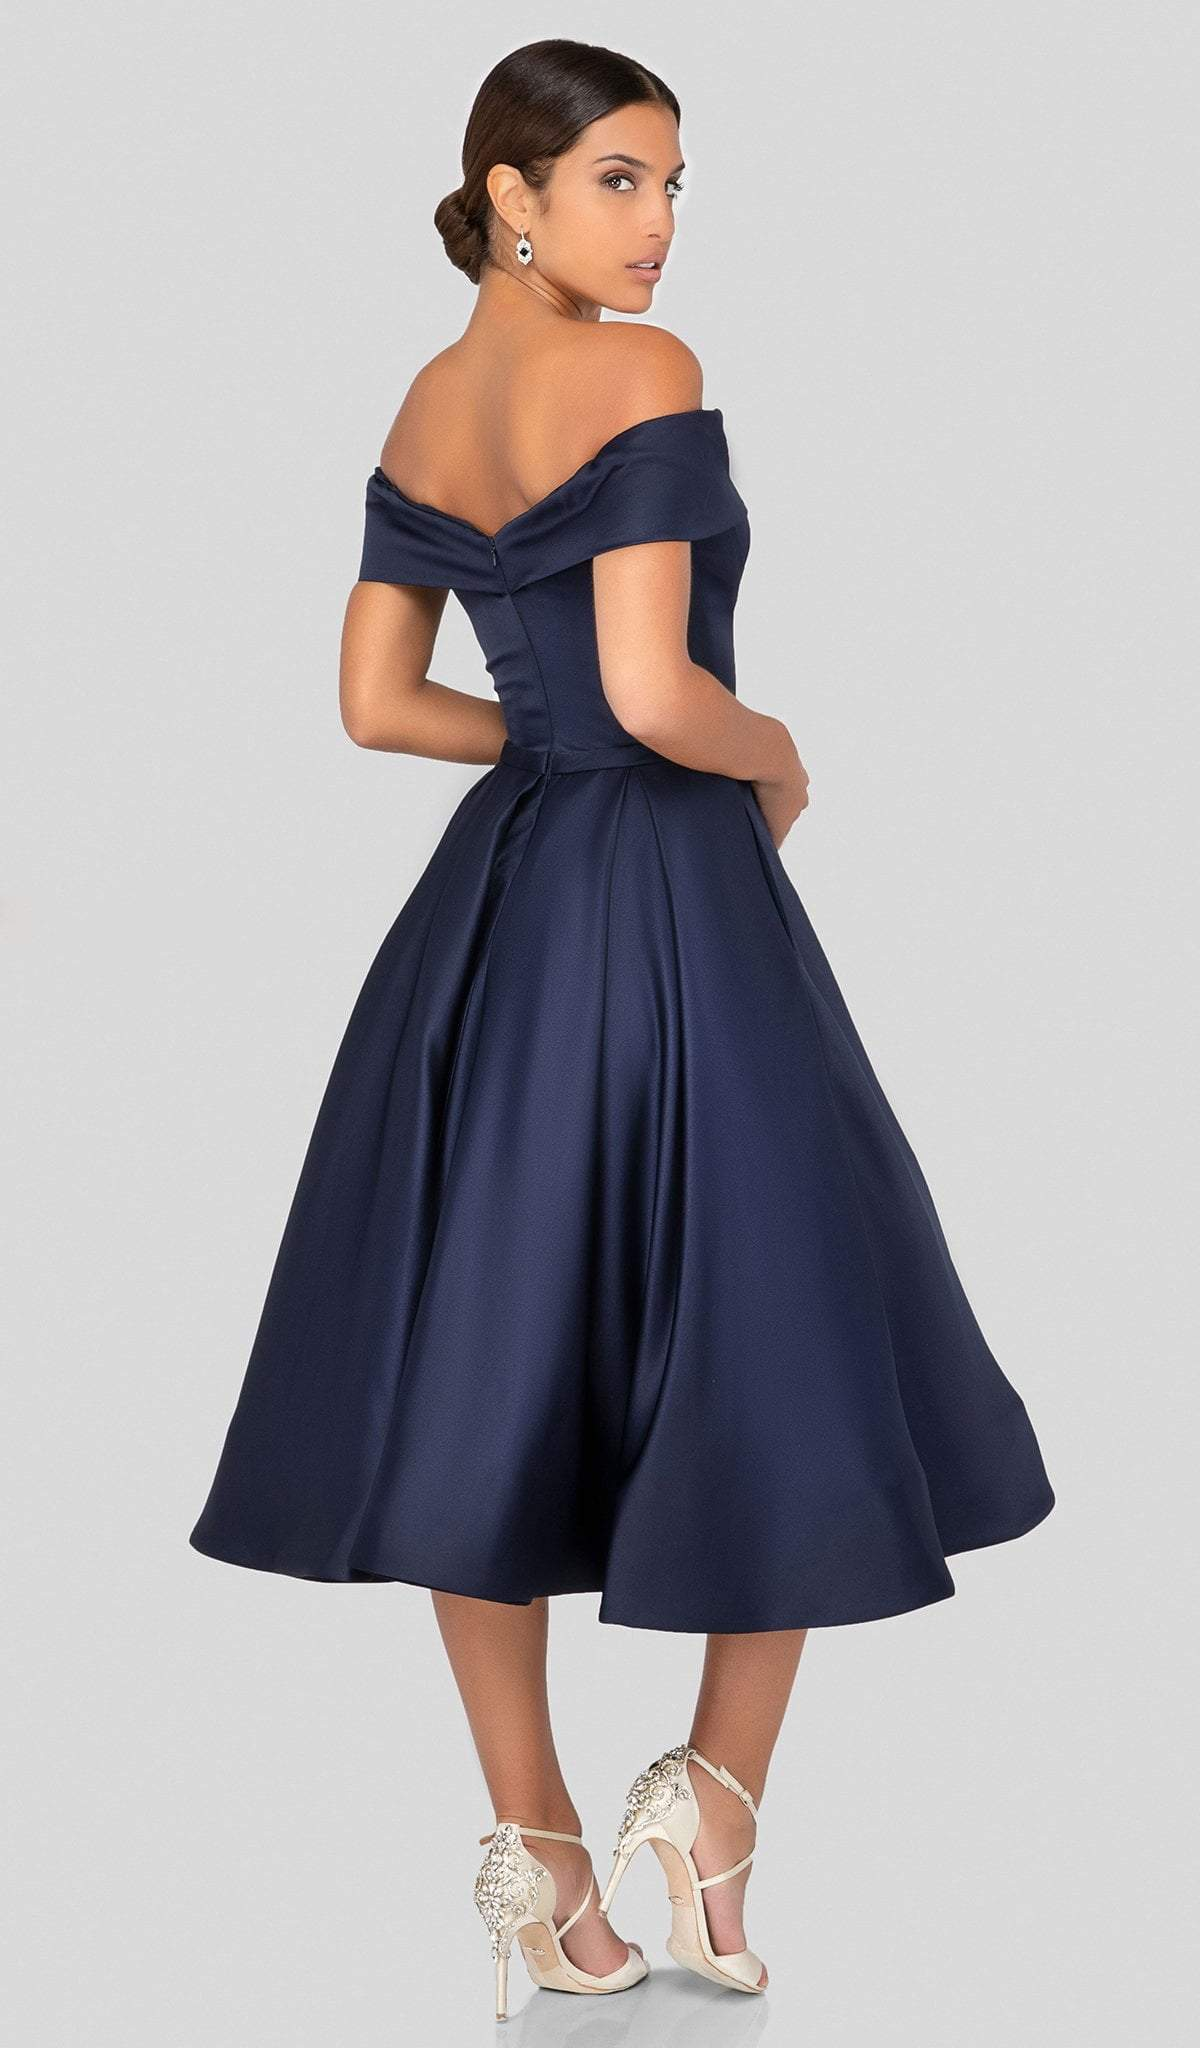 Terani Couture - 1912C9656 Off-Shoulder Tea Length A-line Dress In Blue